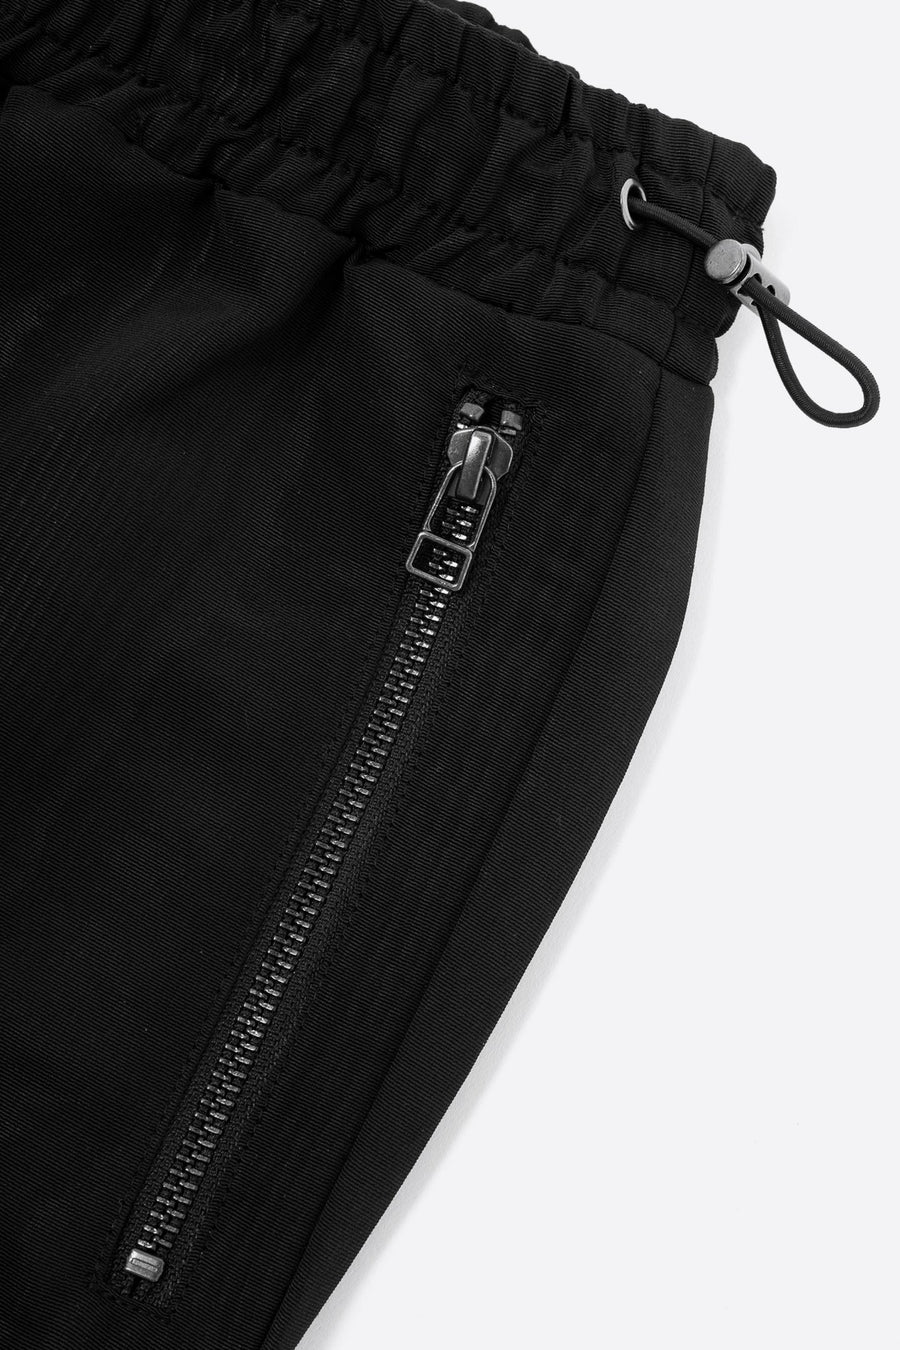 Pantalon Basswood Noir - WASTED PARIS